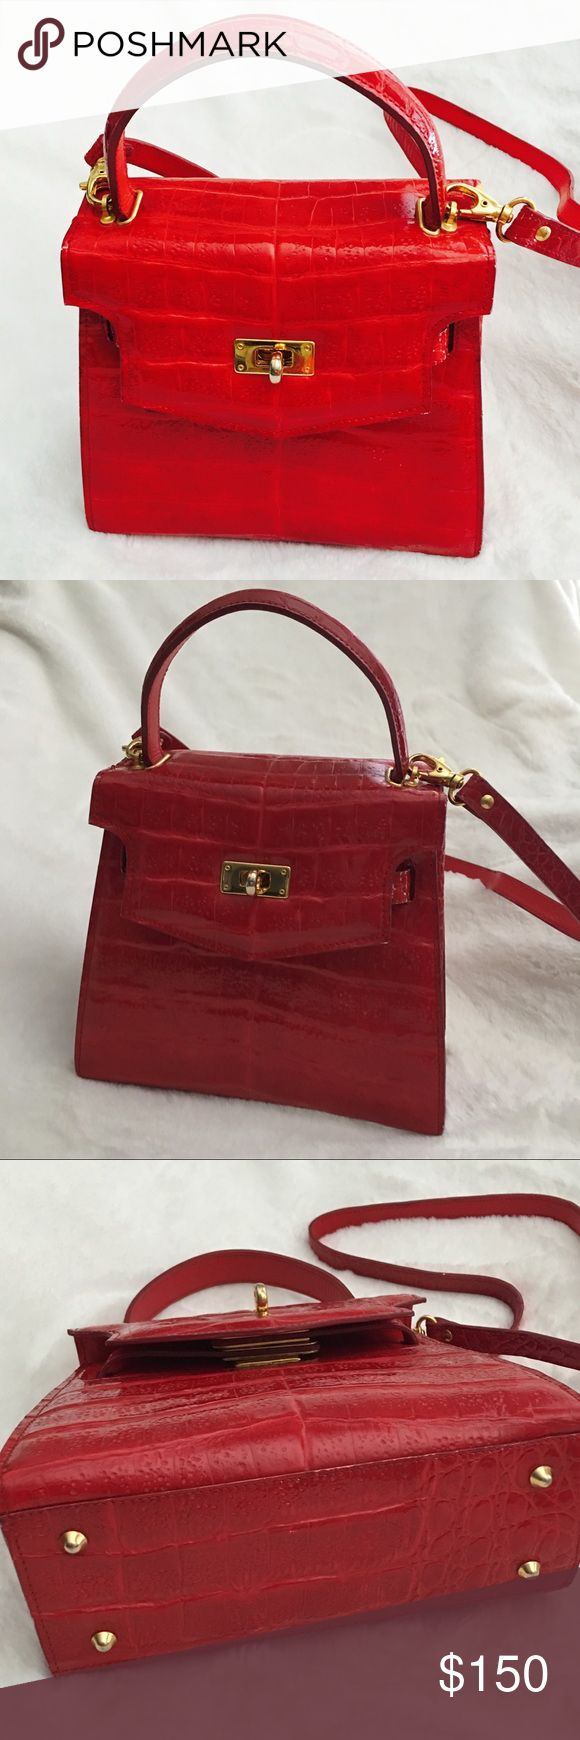 "Retta Wolff Small Red Ligator Purse Exotic Red ""Ligator"" Purse. •GUC •Made in Italy {Please see all pics for wear} Retta Wolff Bags"